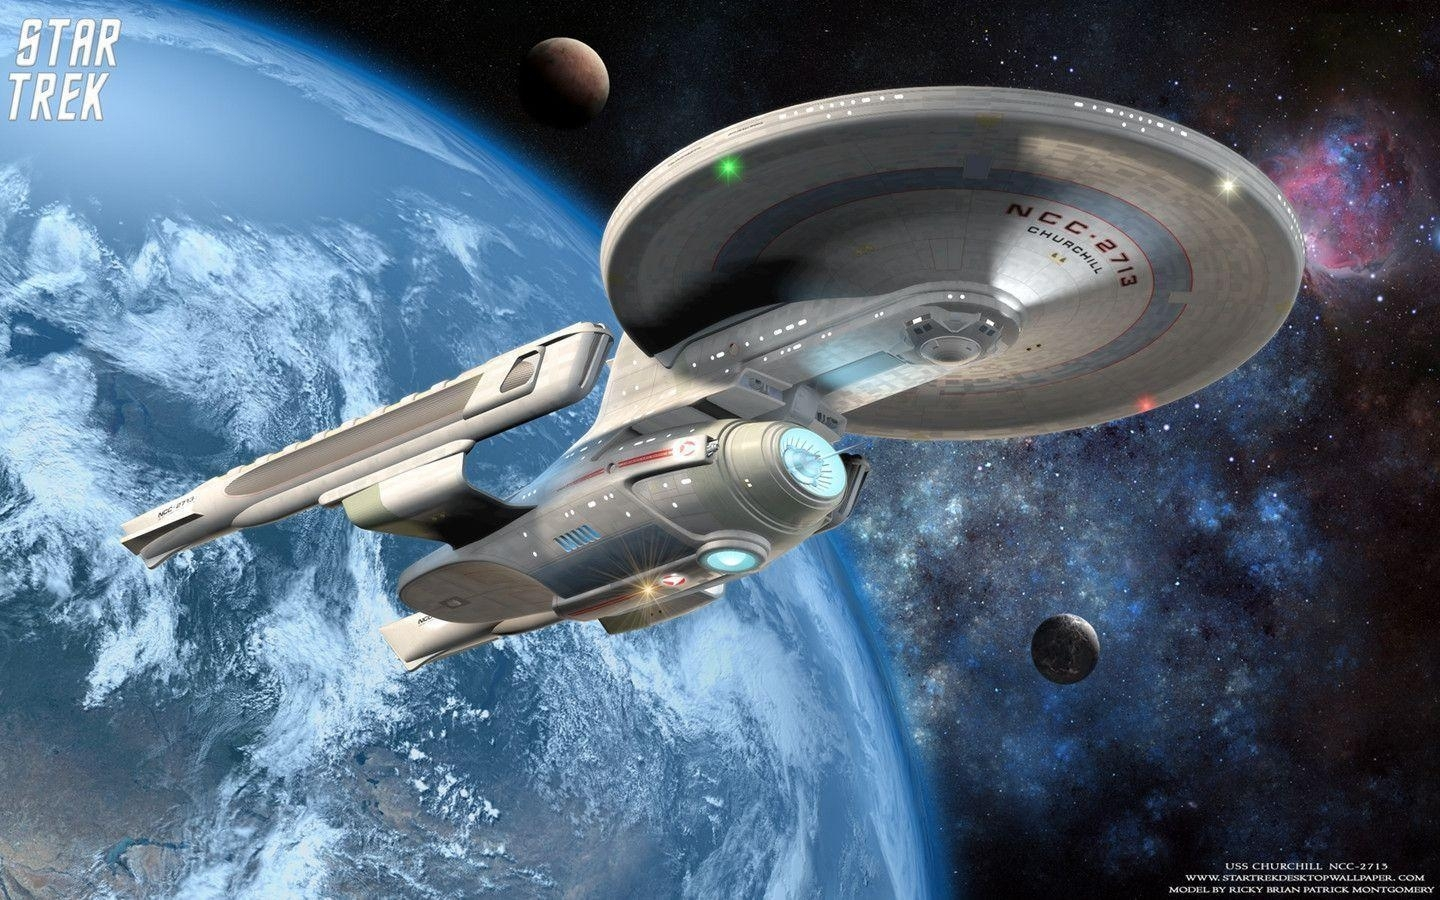 10 Top Free Star Trek Wallpaper FULL HD 1920×1080 For PC Background